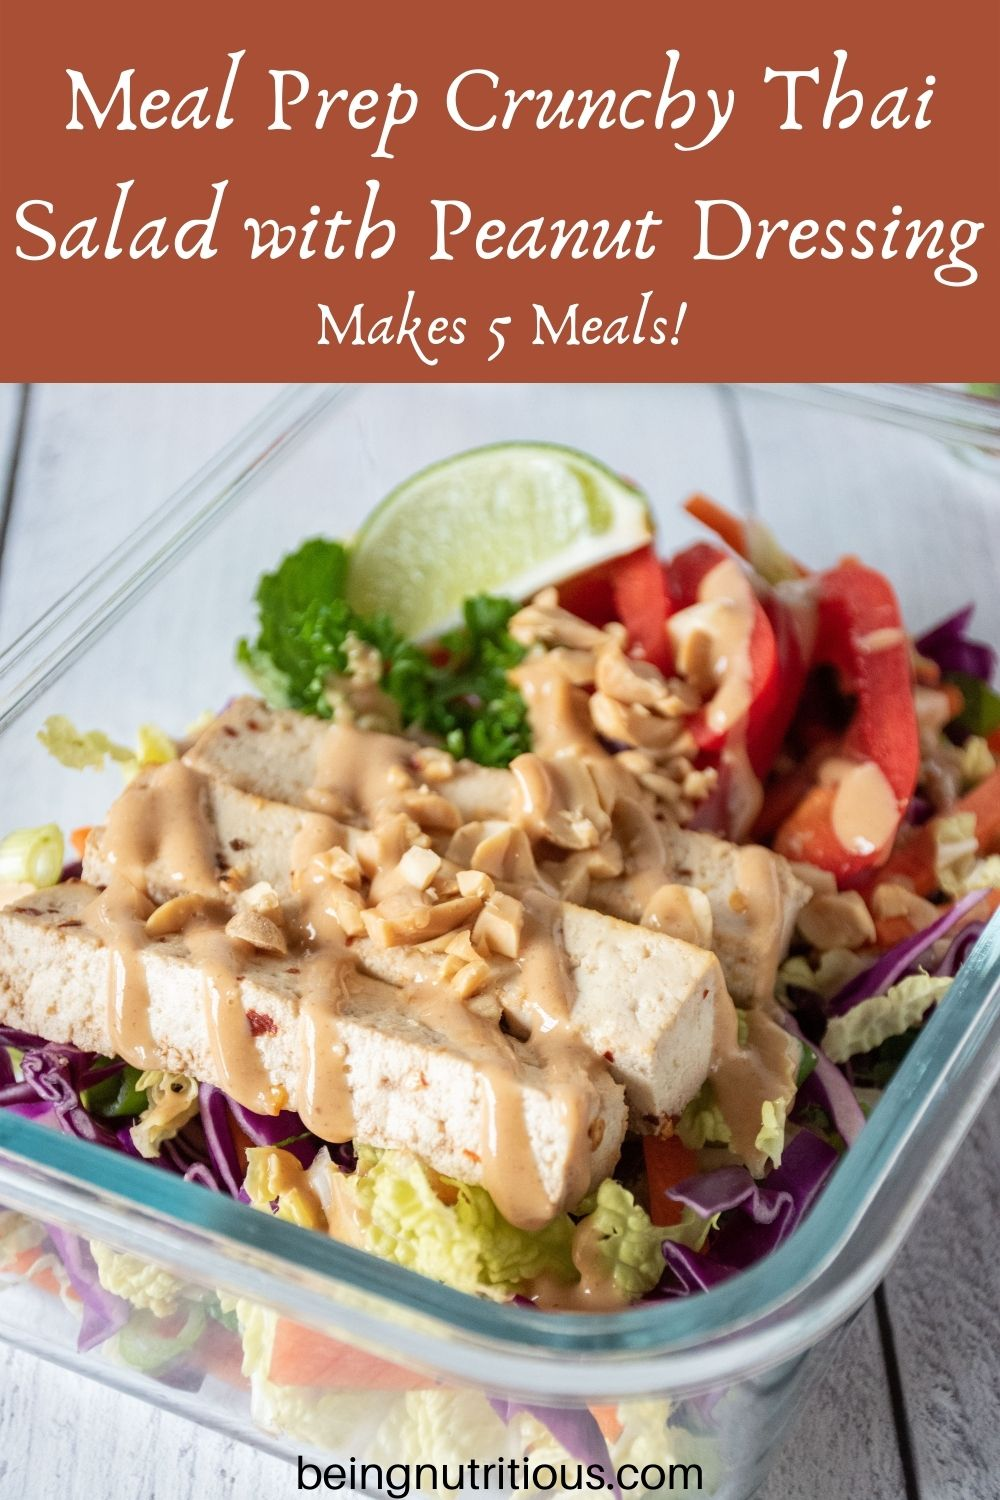 Thai salad in glass meal prep container. Text overlay: Meal Prep Crunchy Thai Salad with Peanut Dressing; makes 5 meals.